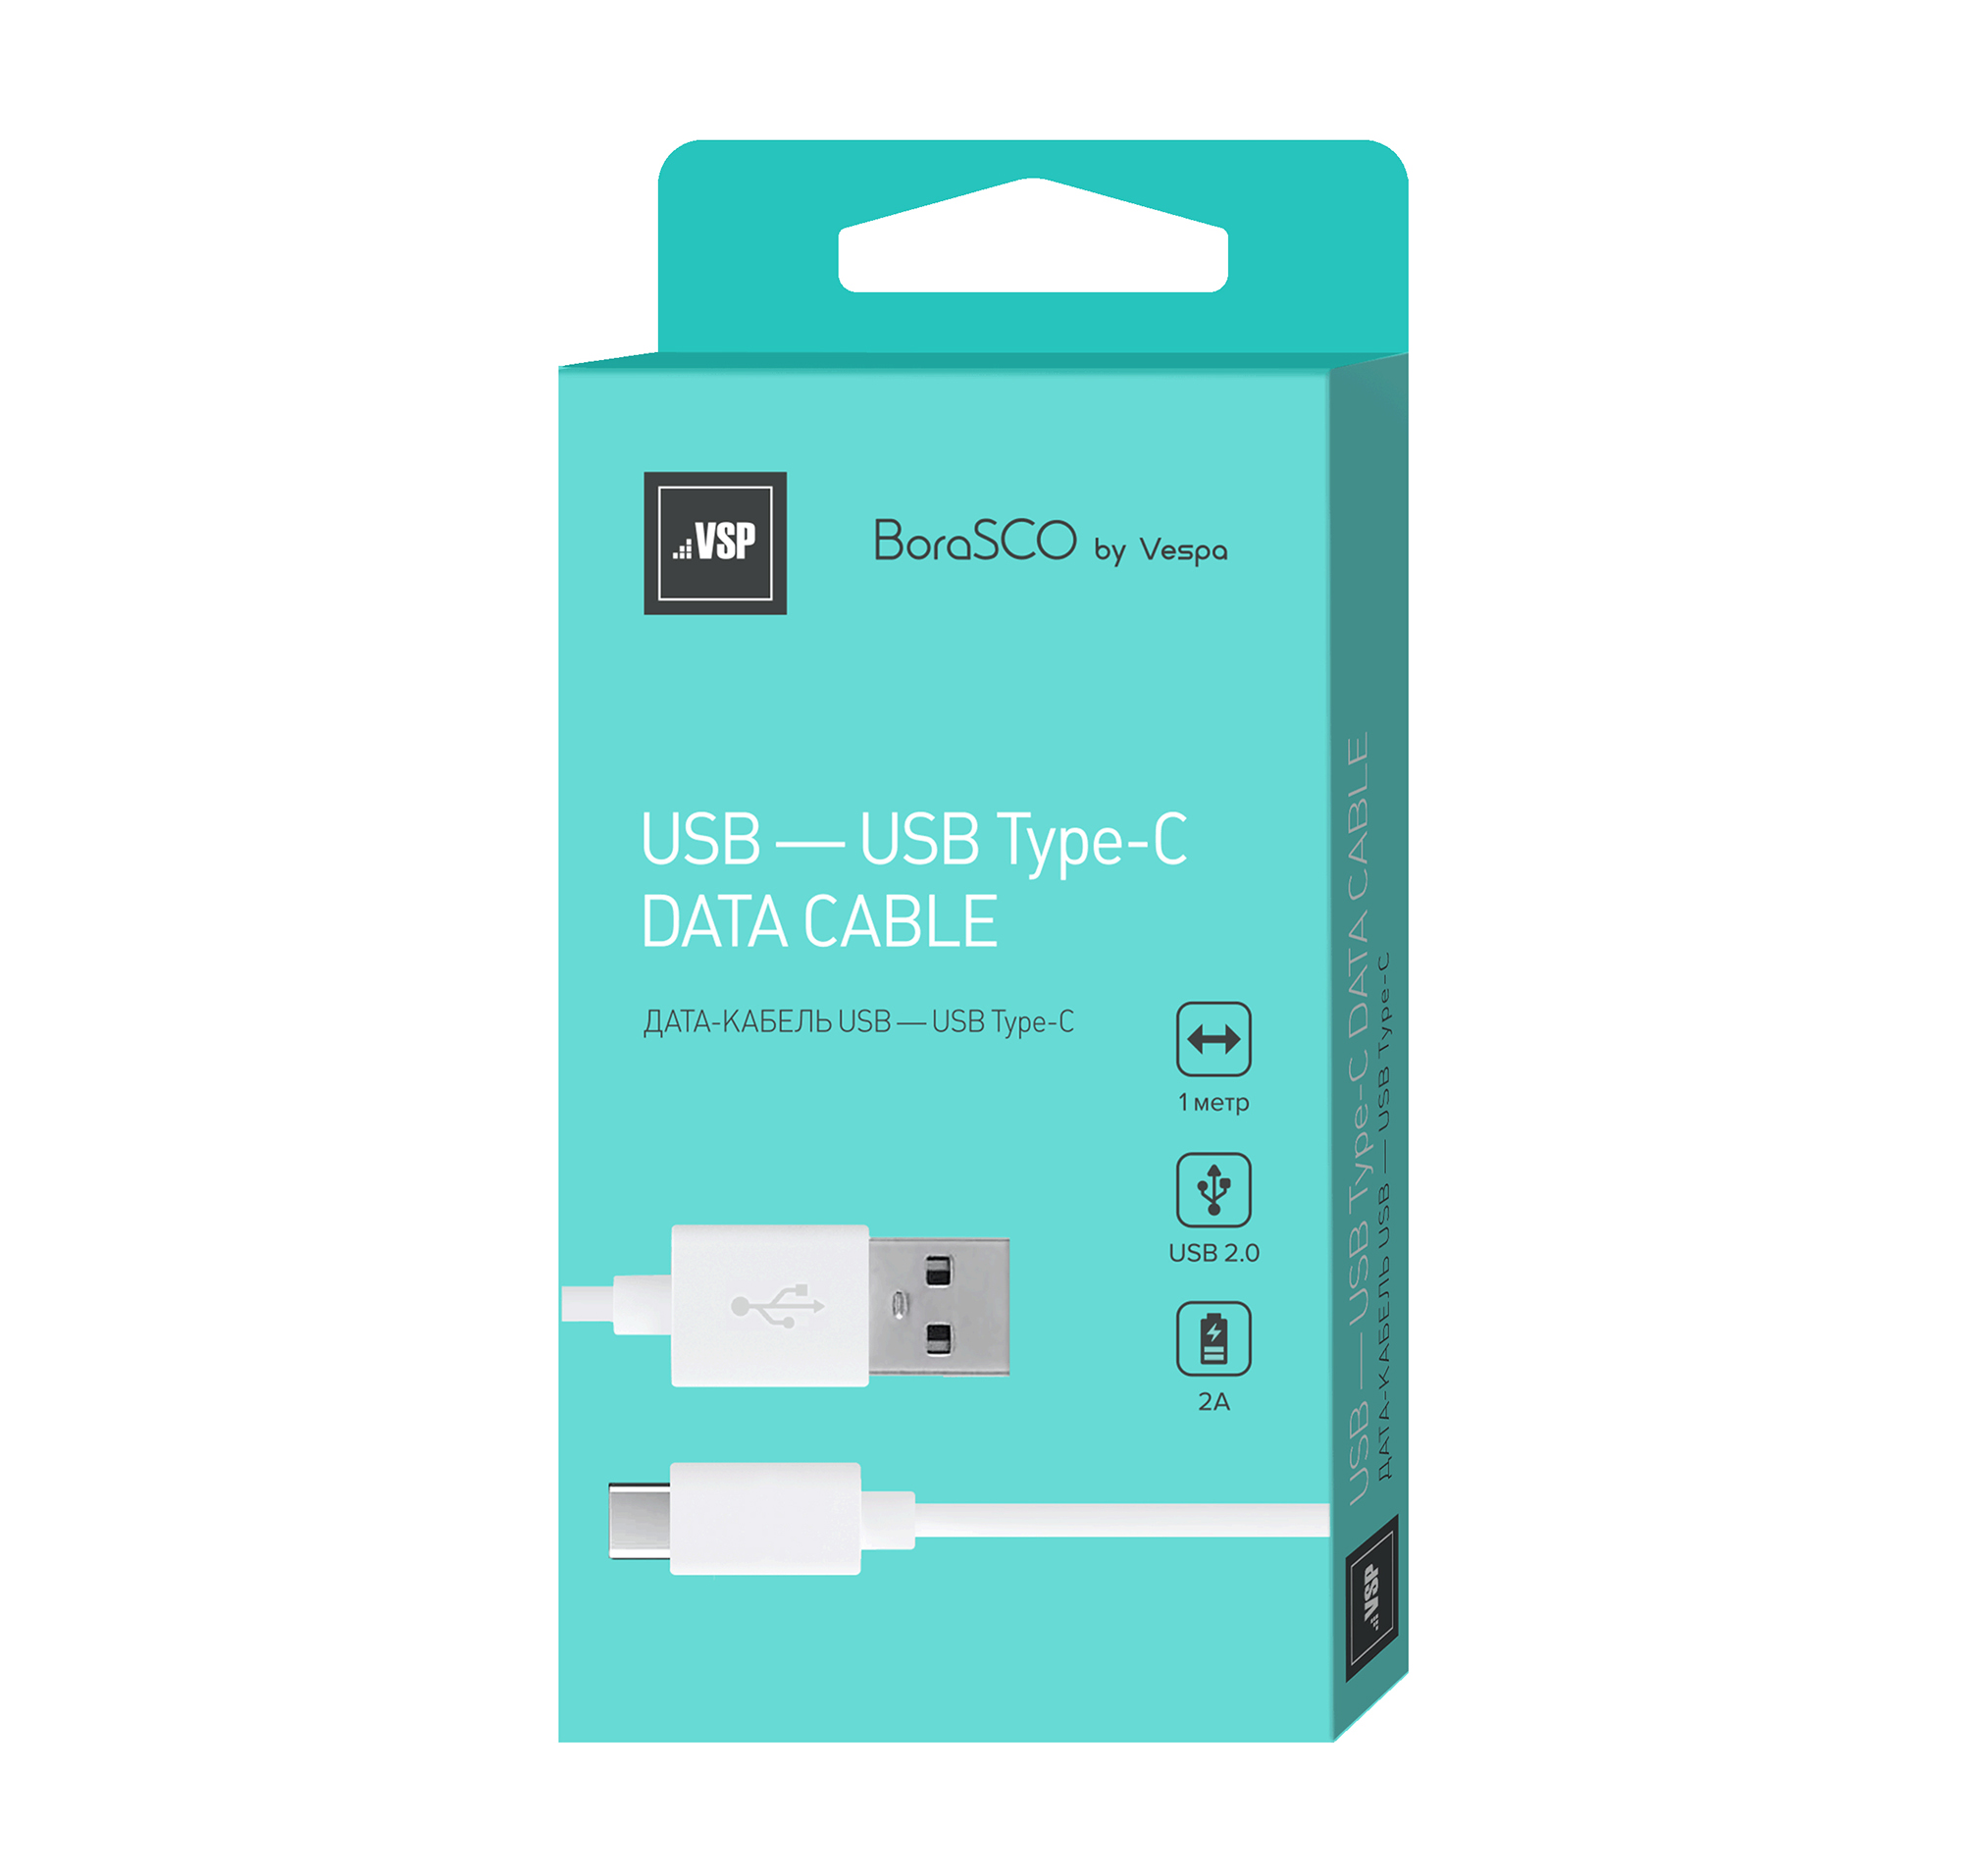 Кабель BoraSCO USB - Type-C, 2А, 1м, белый кабель borasco usb type c 2а 3м черный